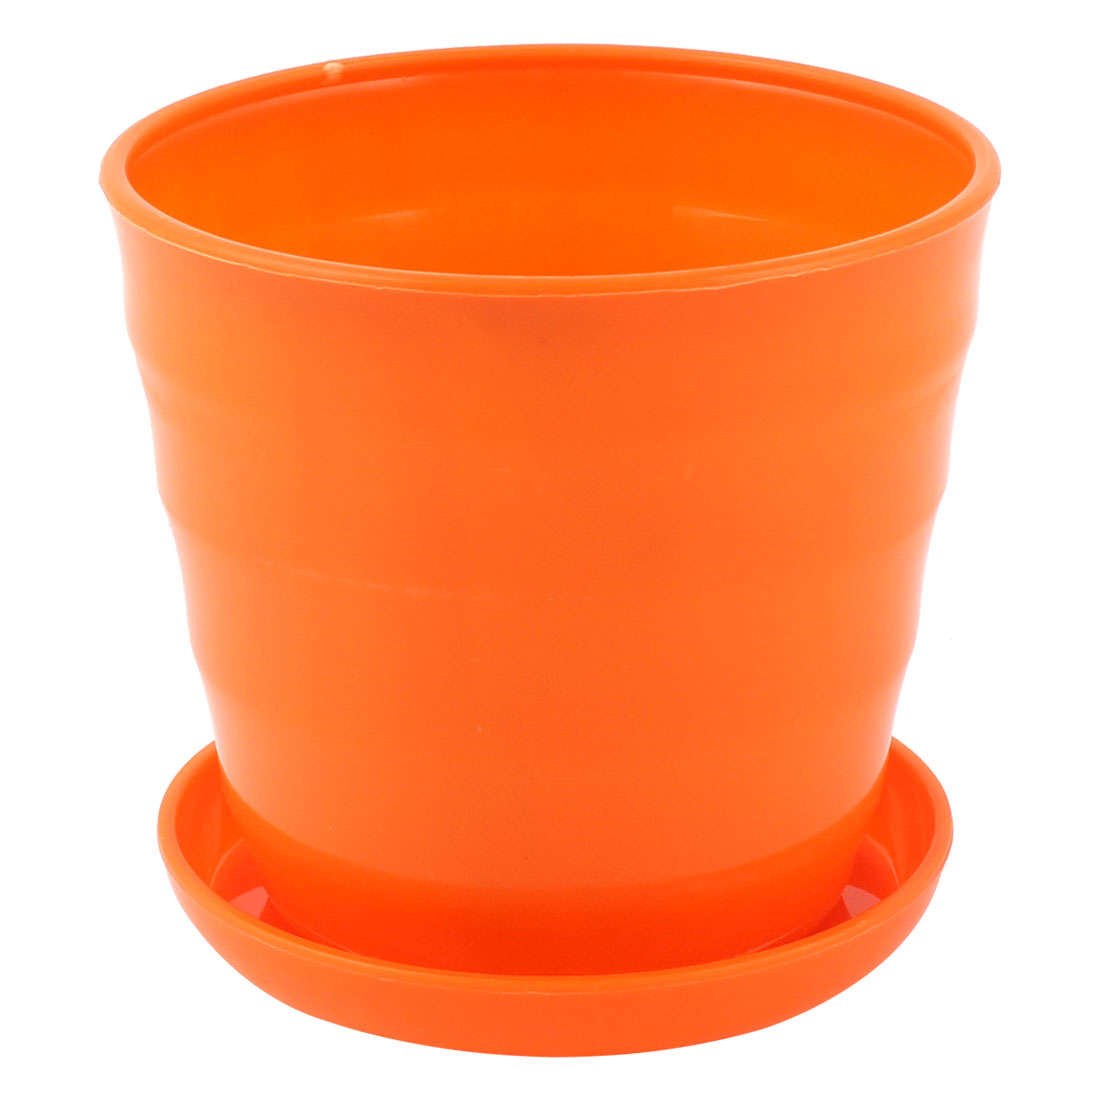 Plastic Stripe Pattern Home Office Mini Plant Planter Holder Flower Pot Orange